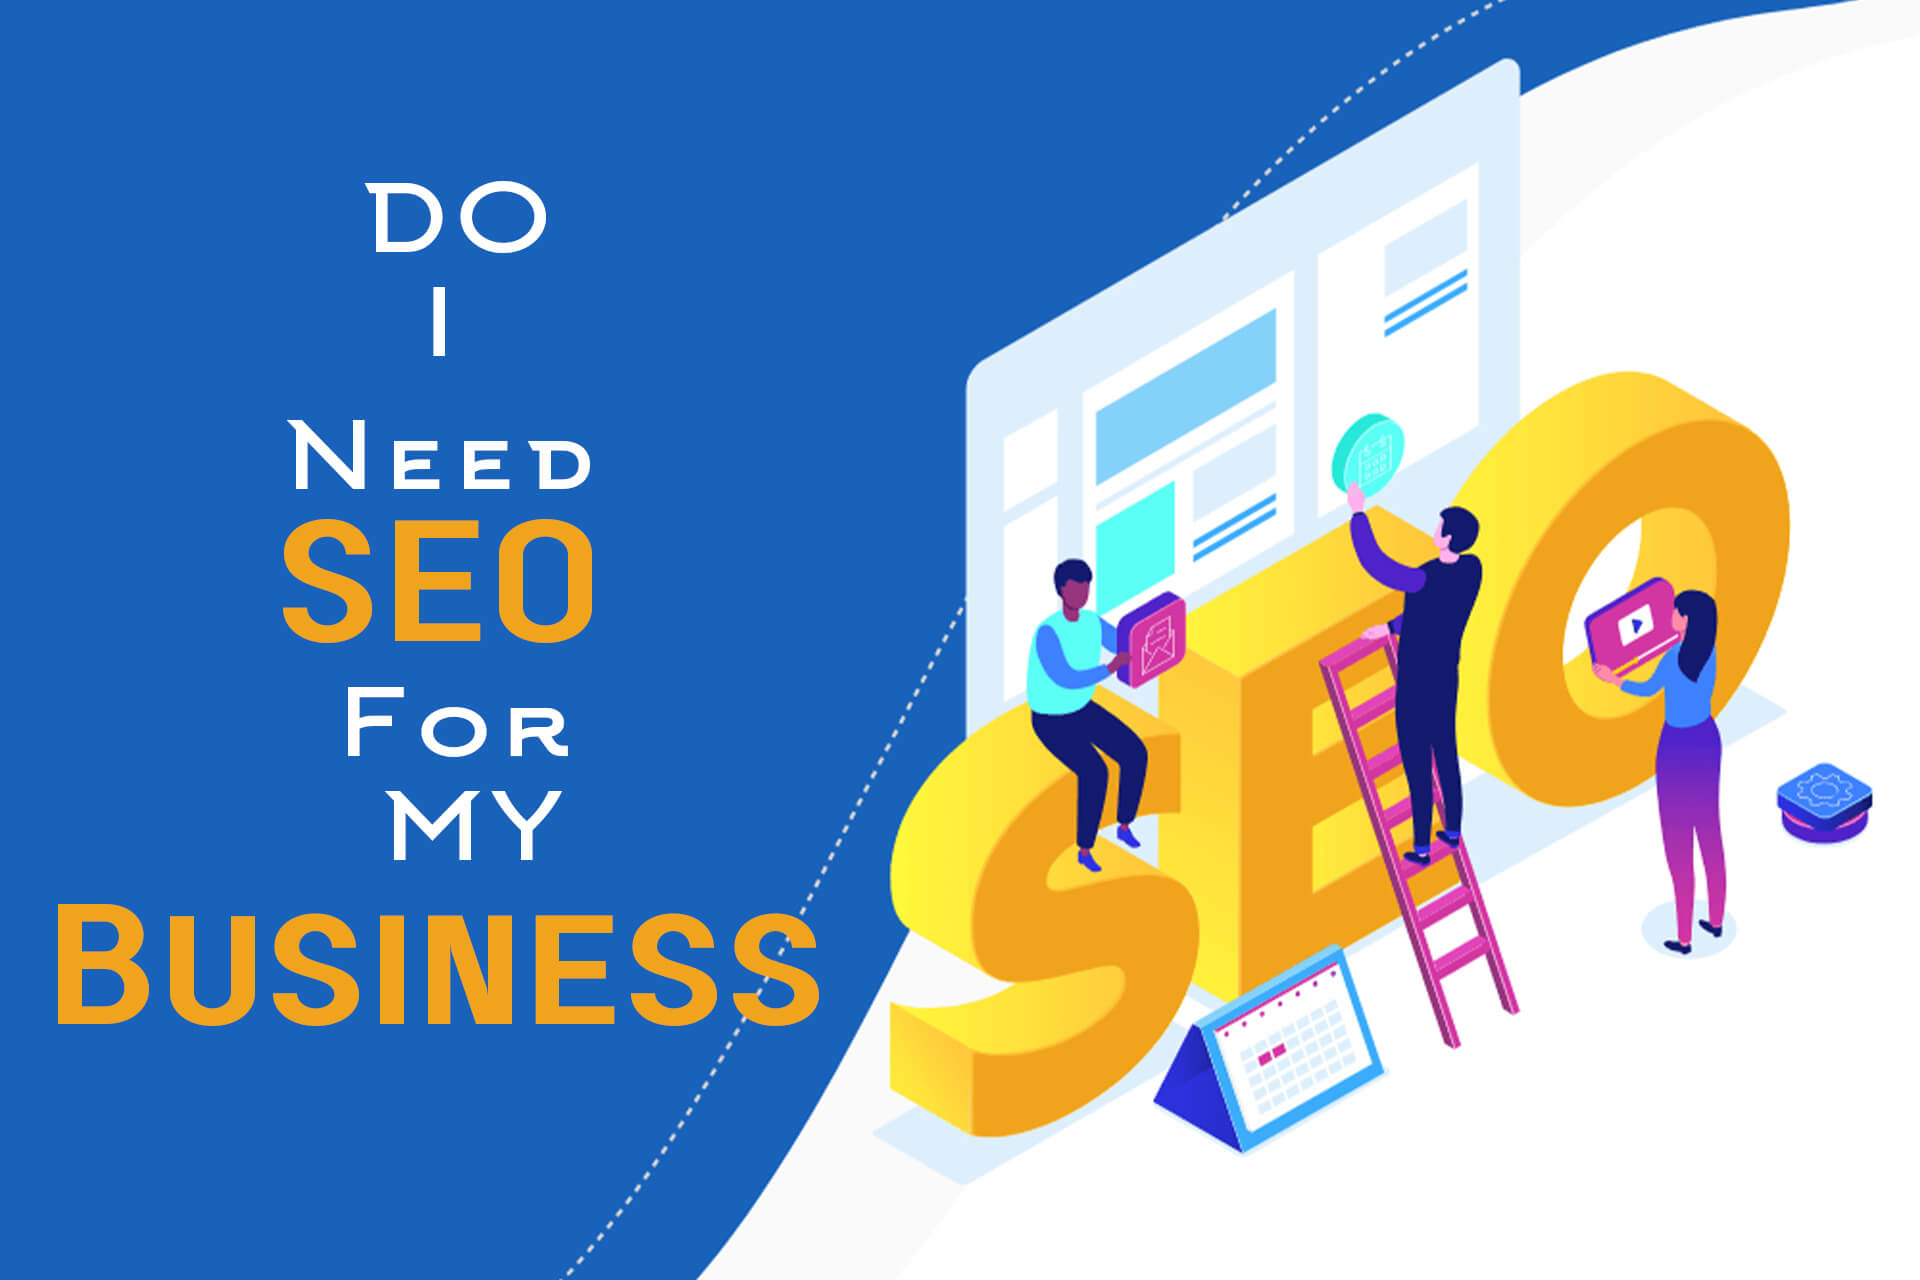 Do I Need SEO For My Business?